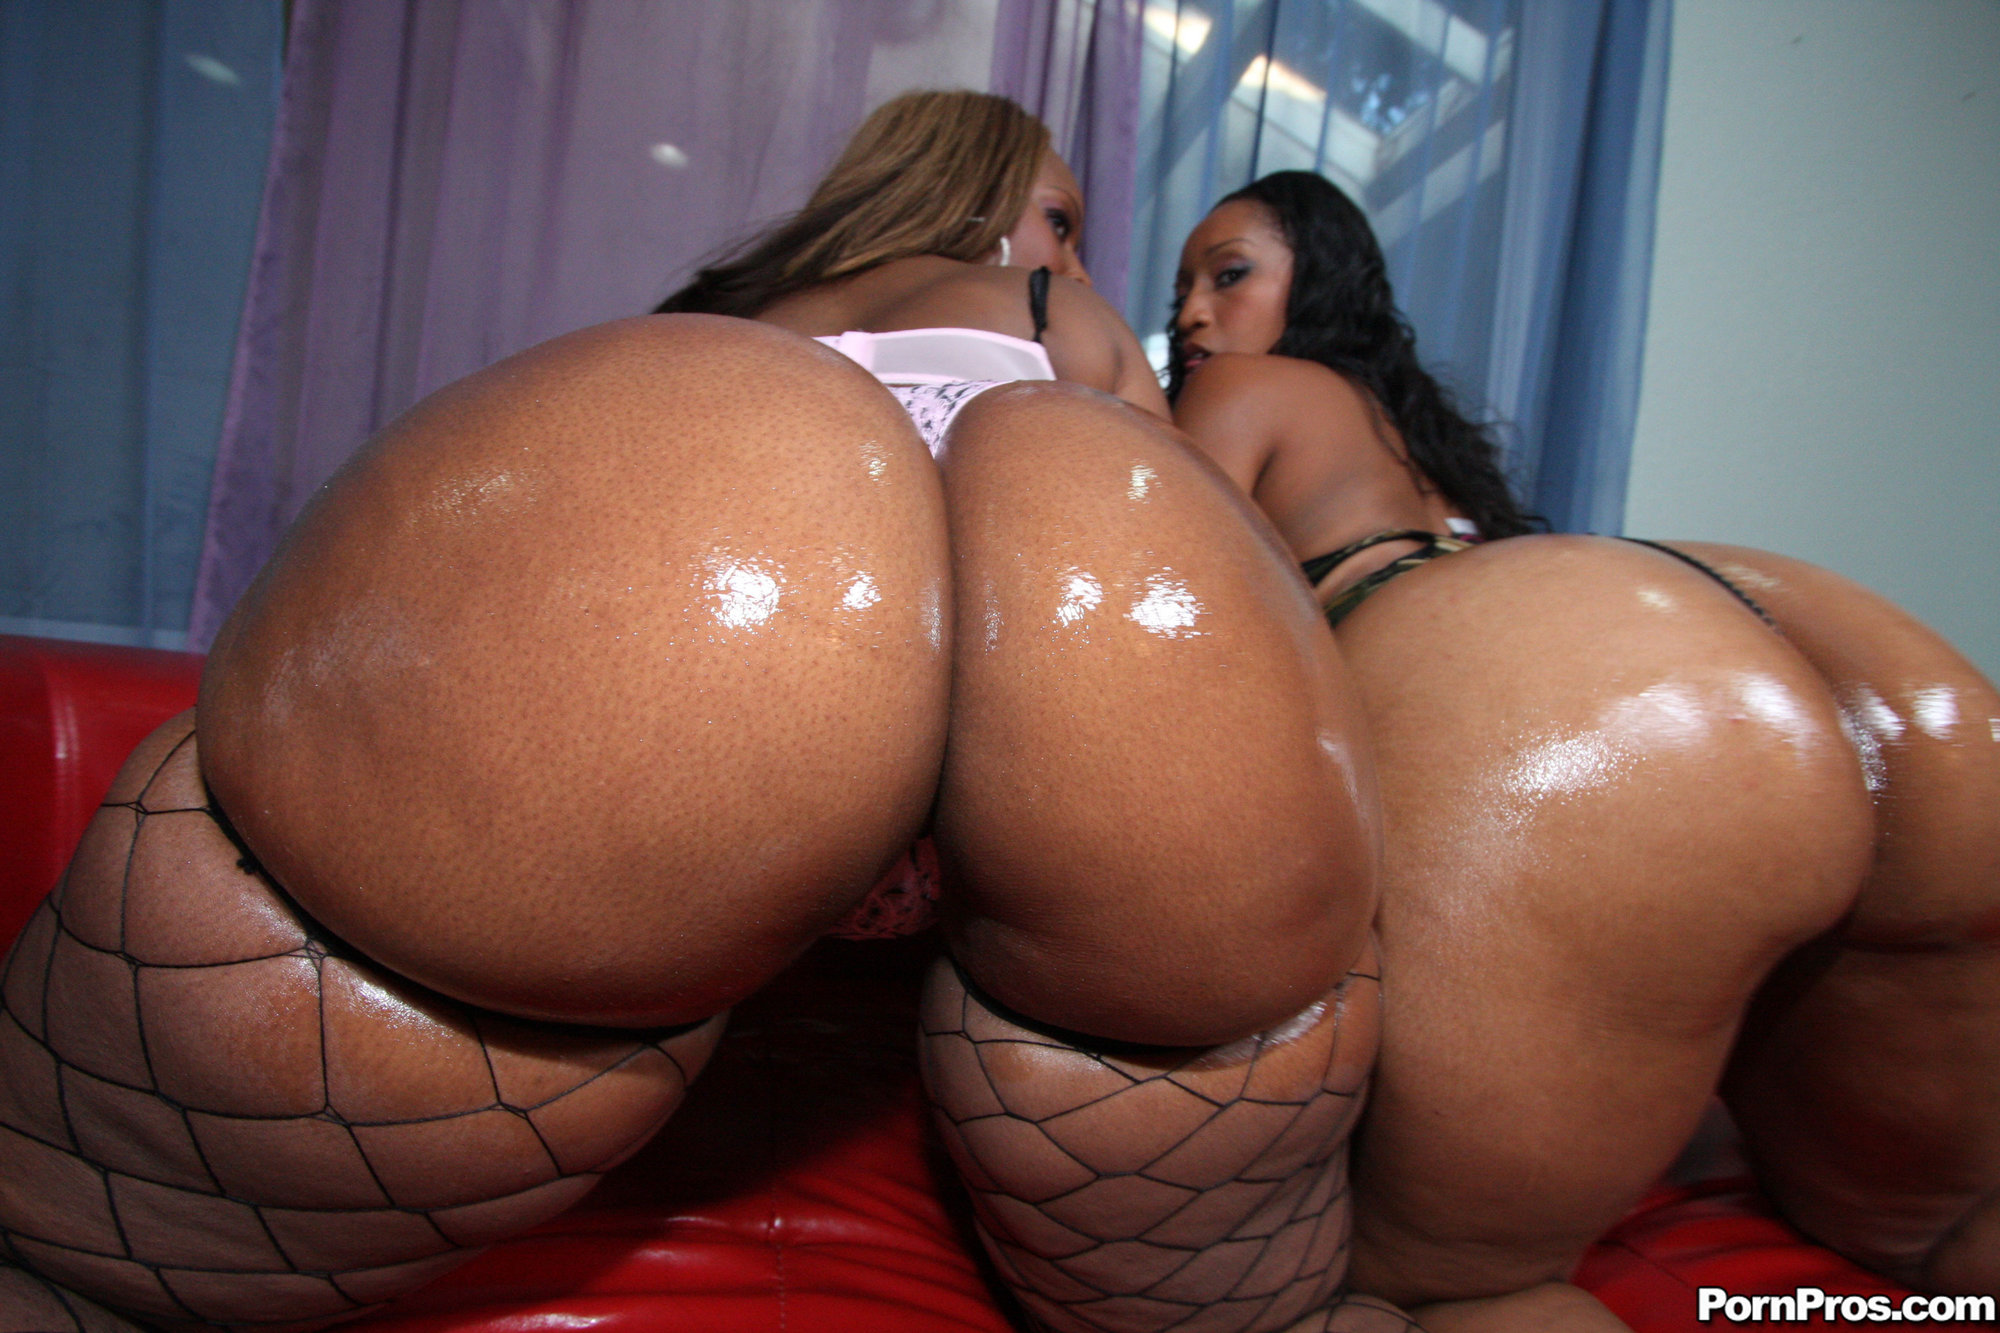 Fat black butt free download adult images